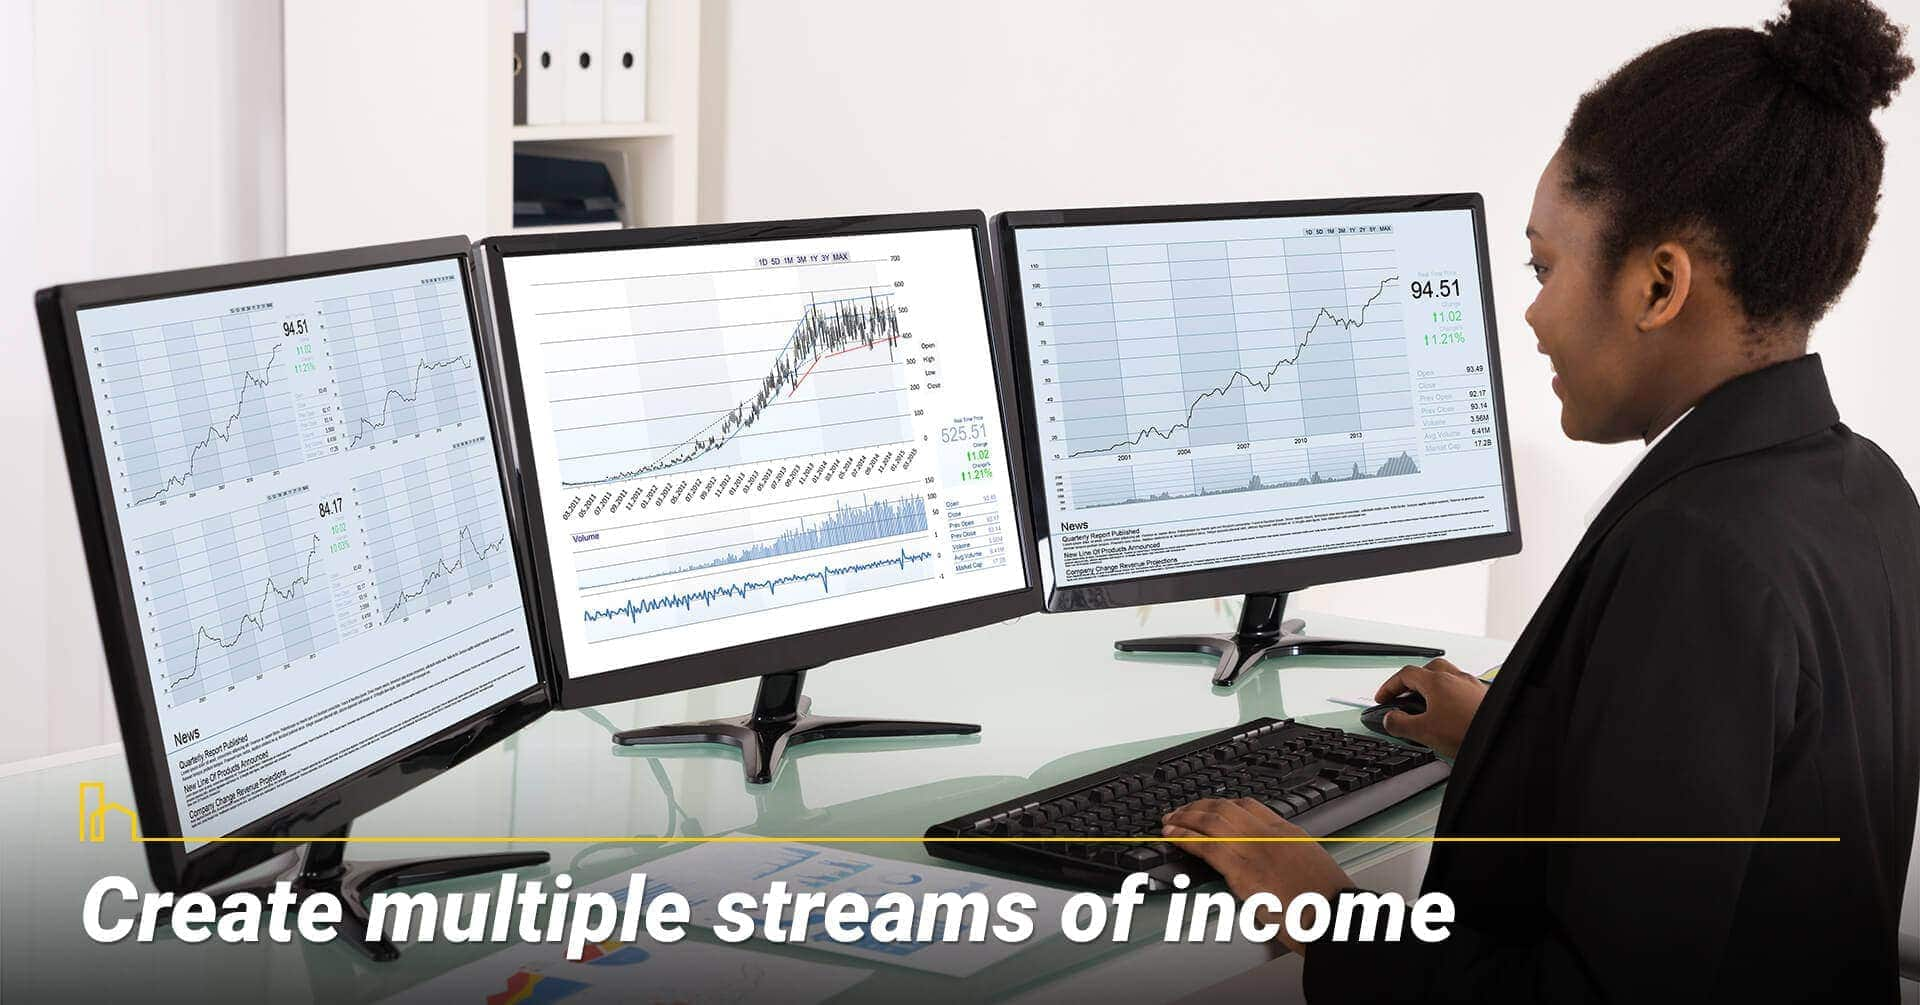 Create multiple streams of income